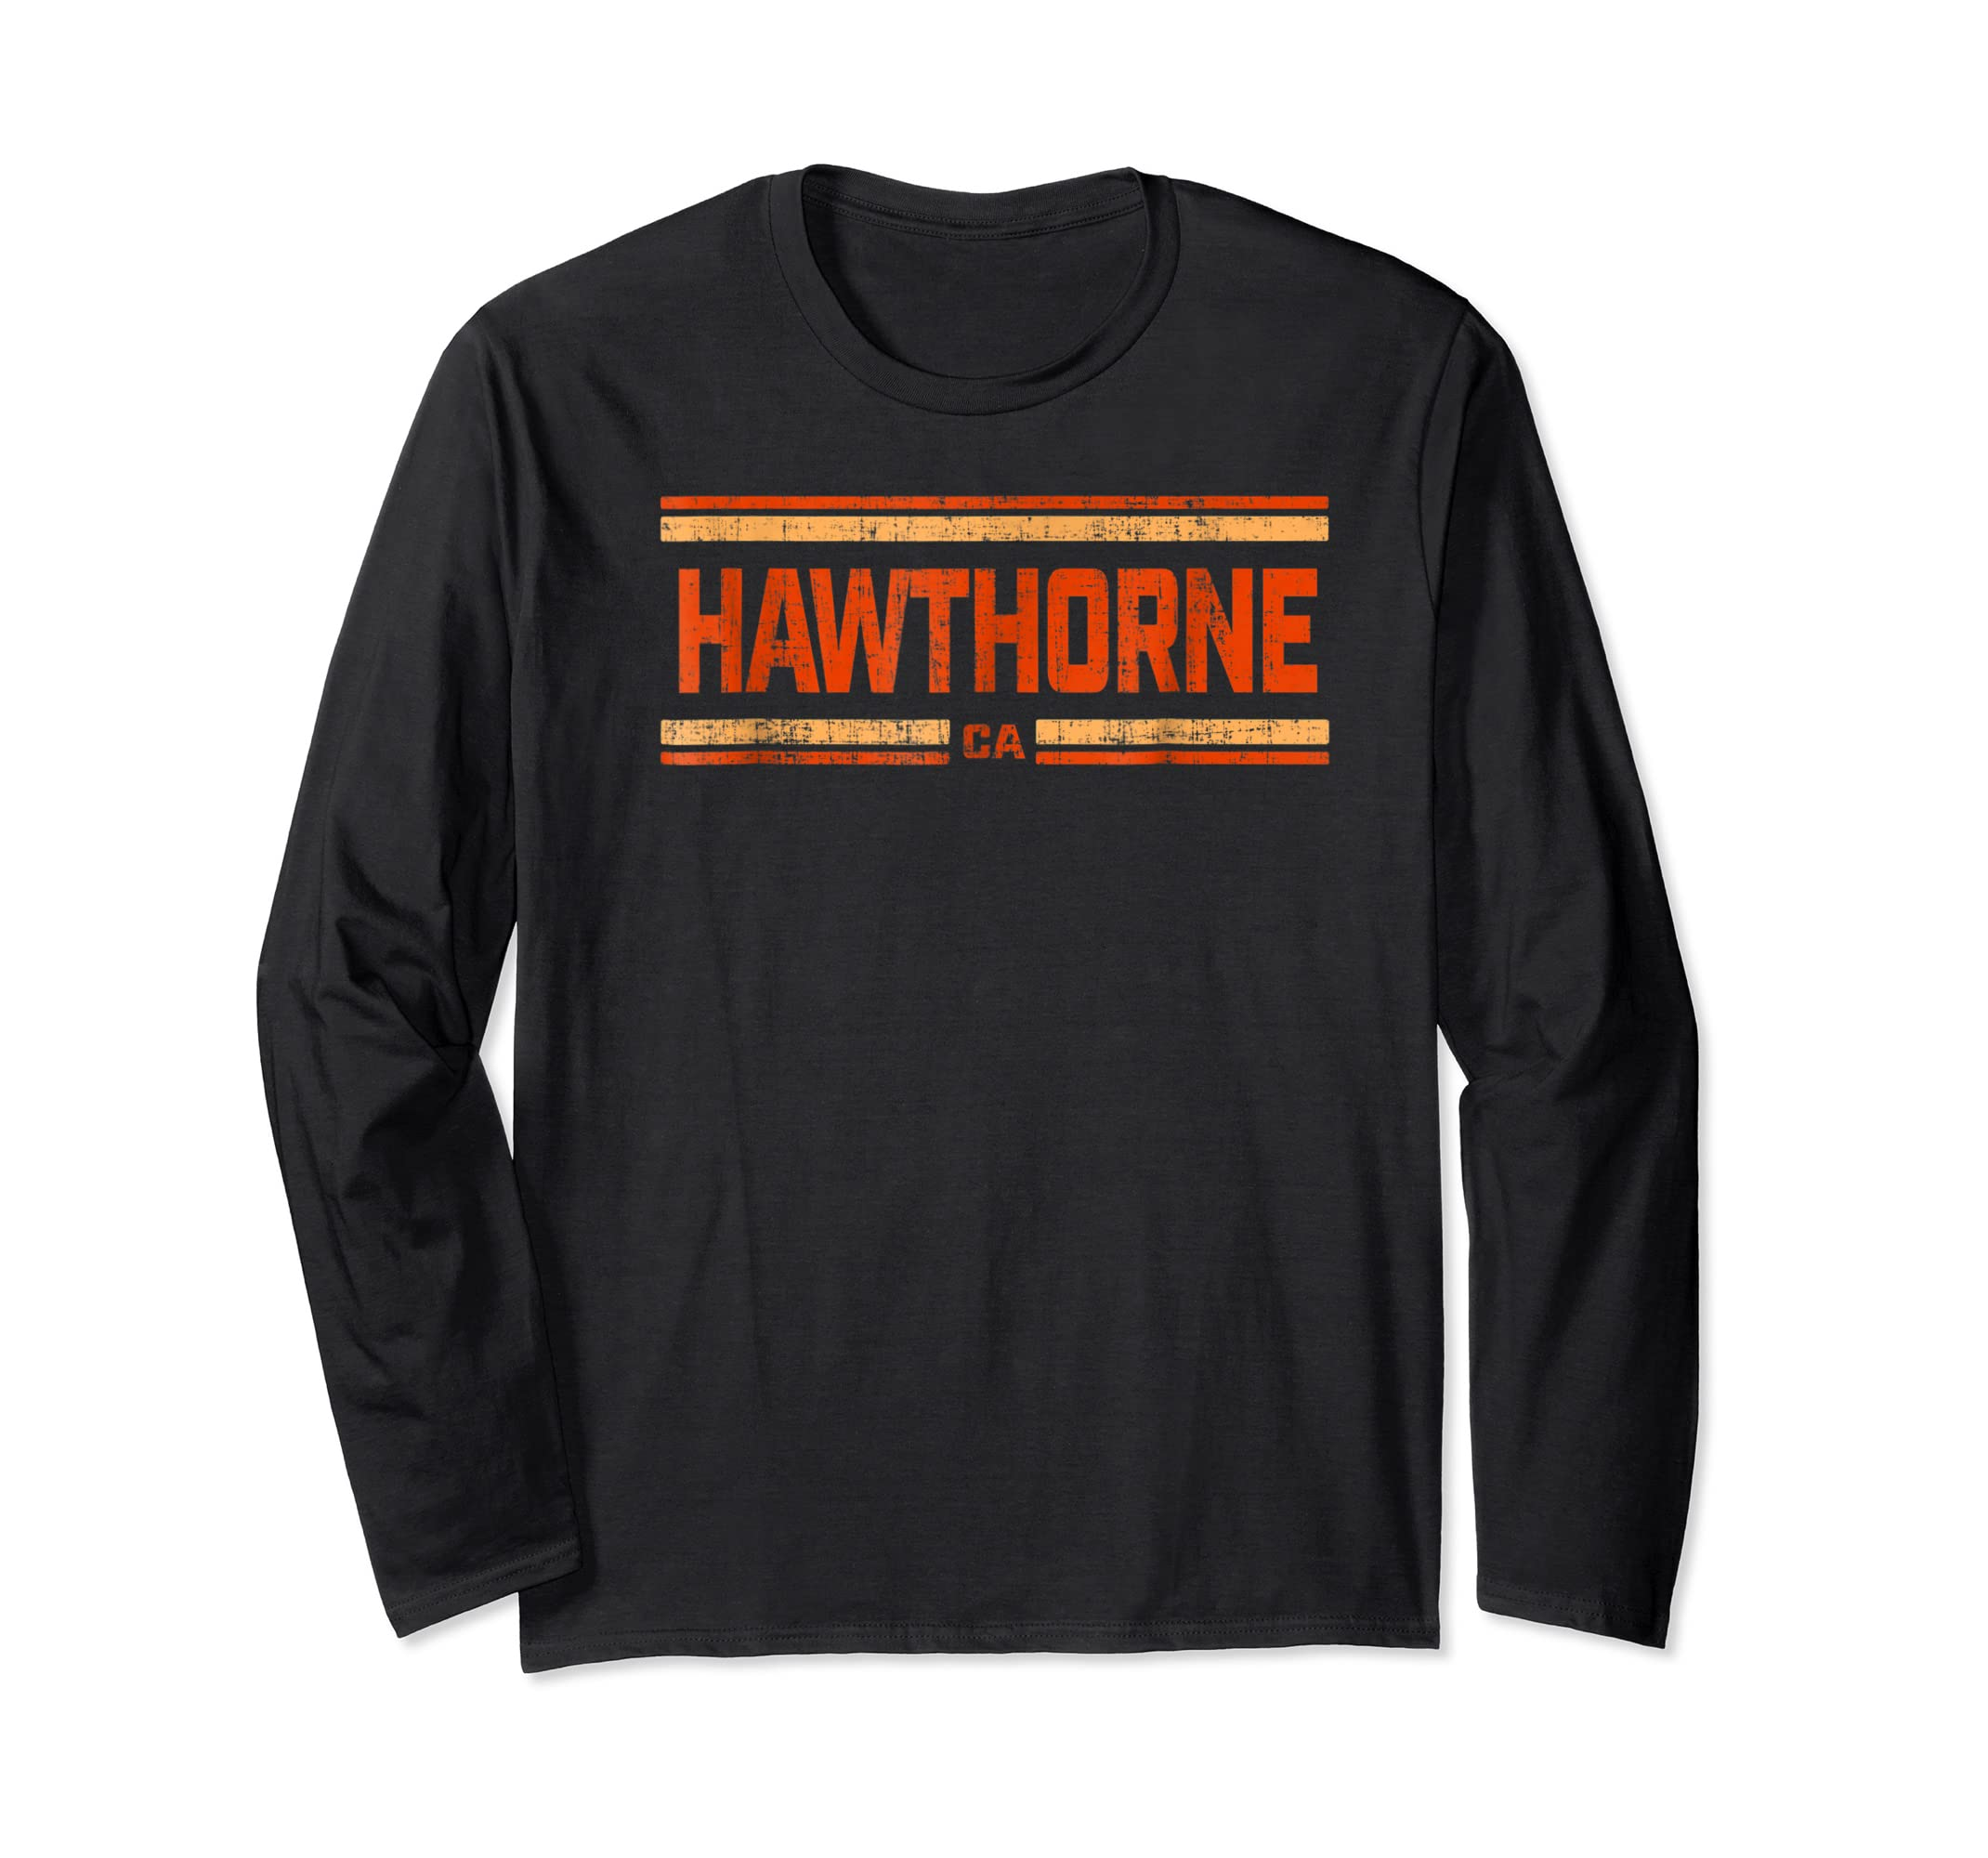 Retro Vintage Hawthorne CA Distressed T-Shirt-Long Sleeve-Black